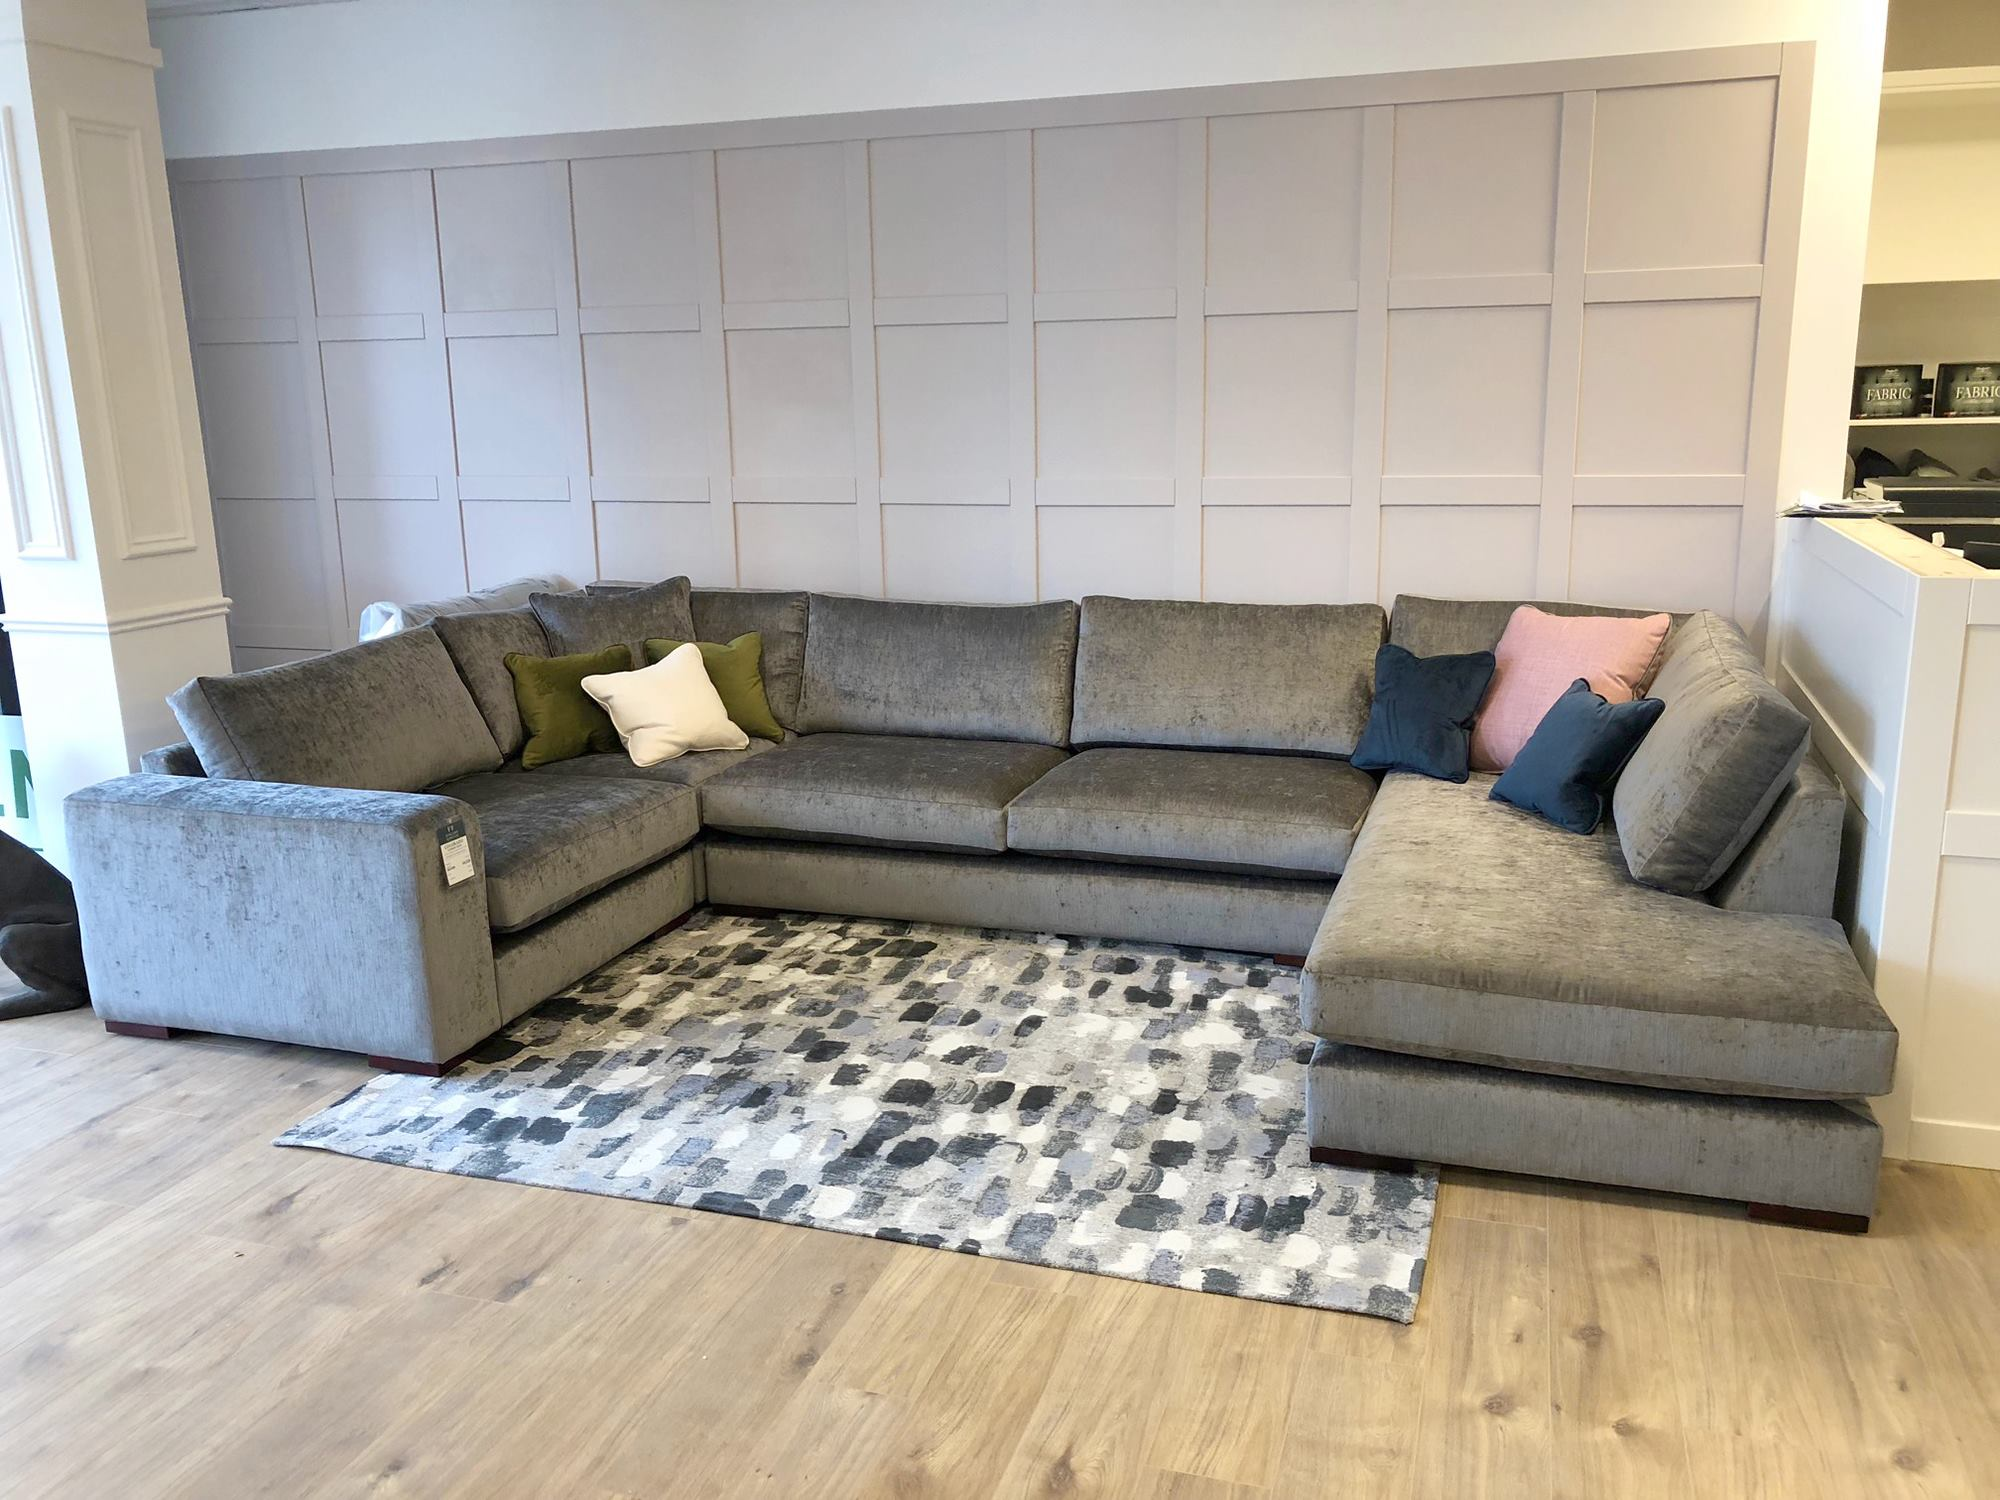 loose covers for queen anne chairs art deco sofa galway ireland taraba home review